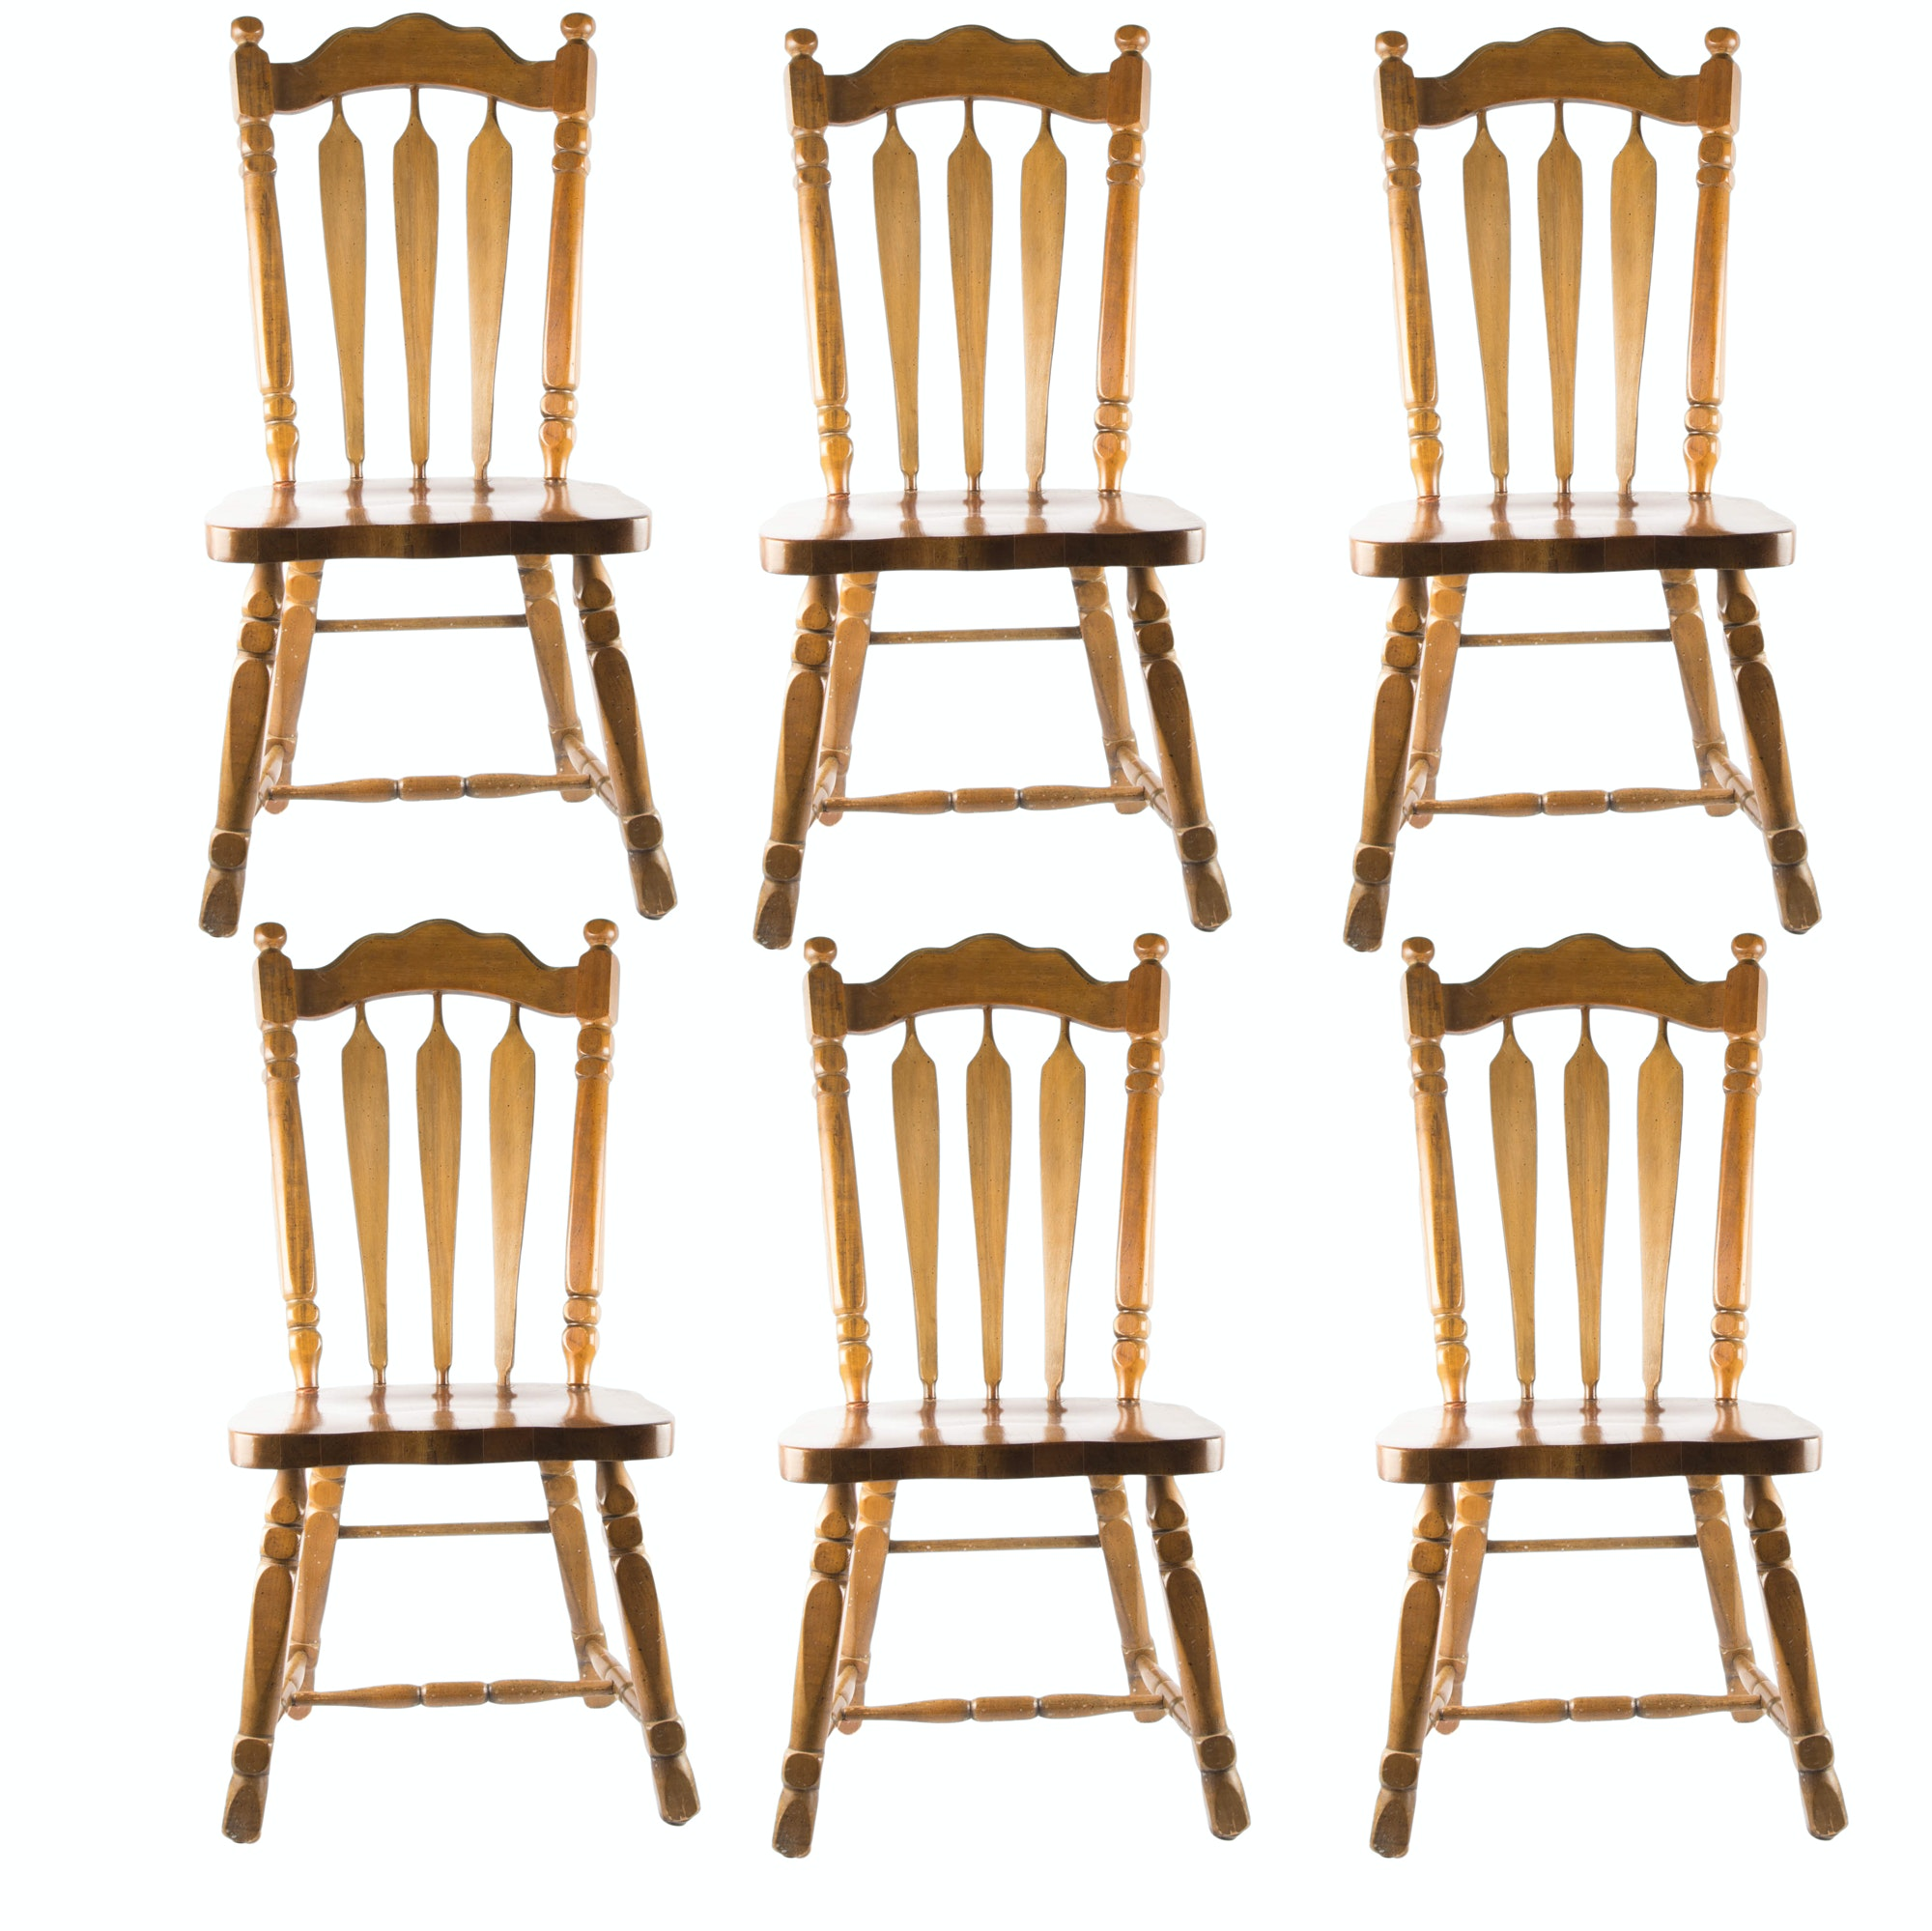 Early American Dining Room Furniture: Set Of Six Early American Dining Room Chairs : EBTH